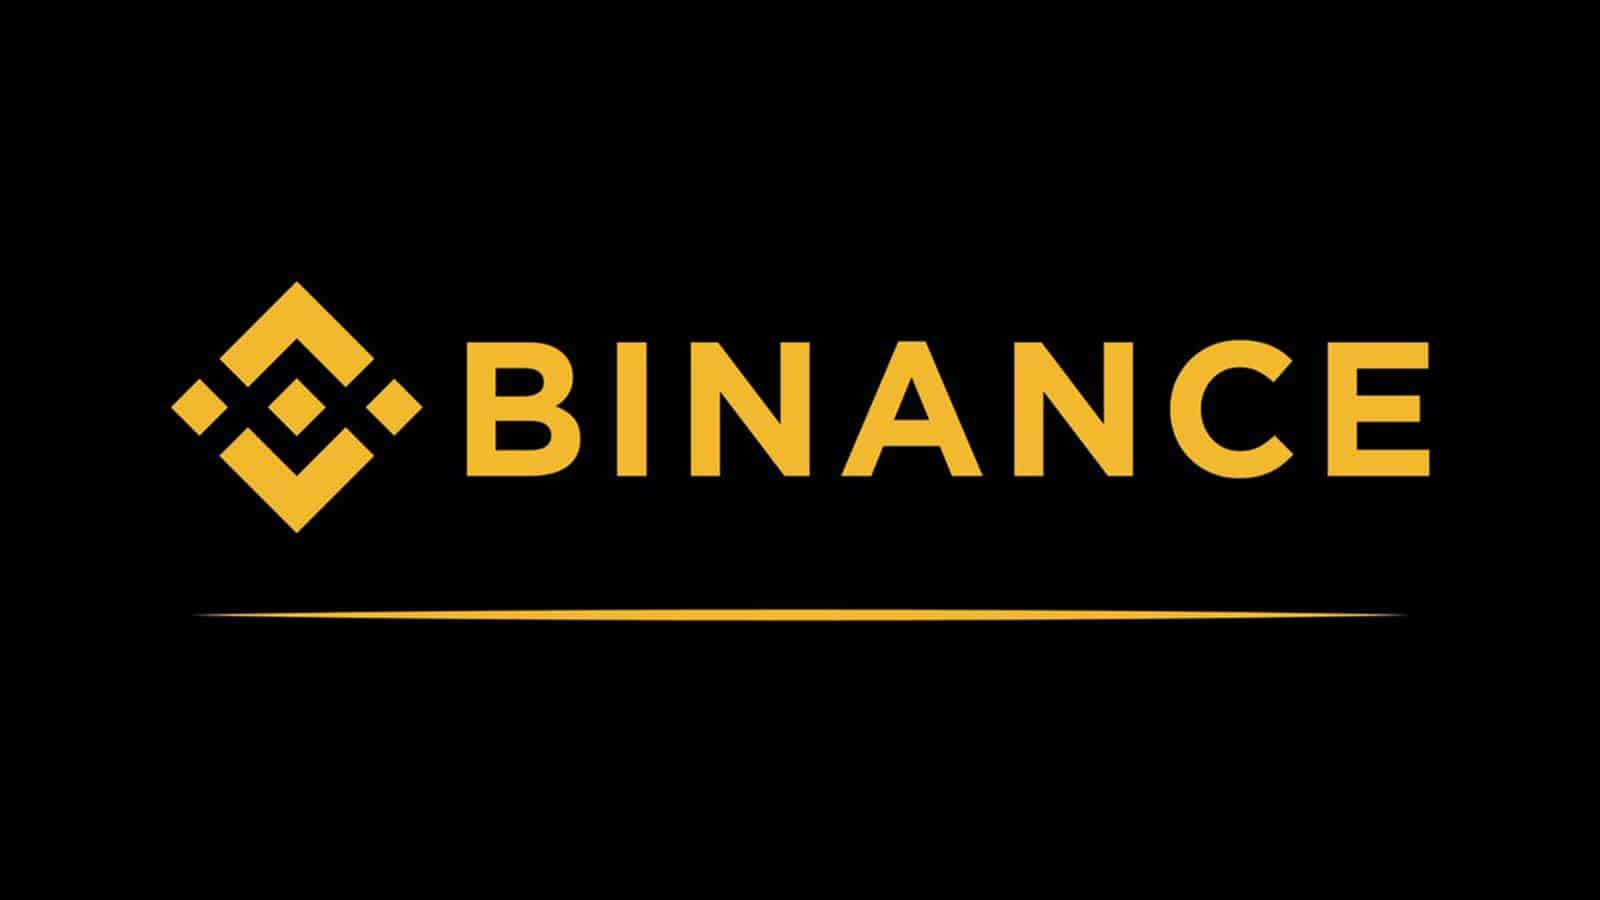 The Recent Binance Hack is the Sixth Largest in Crypto History